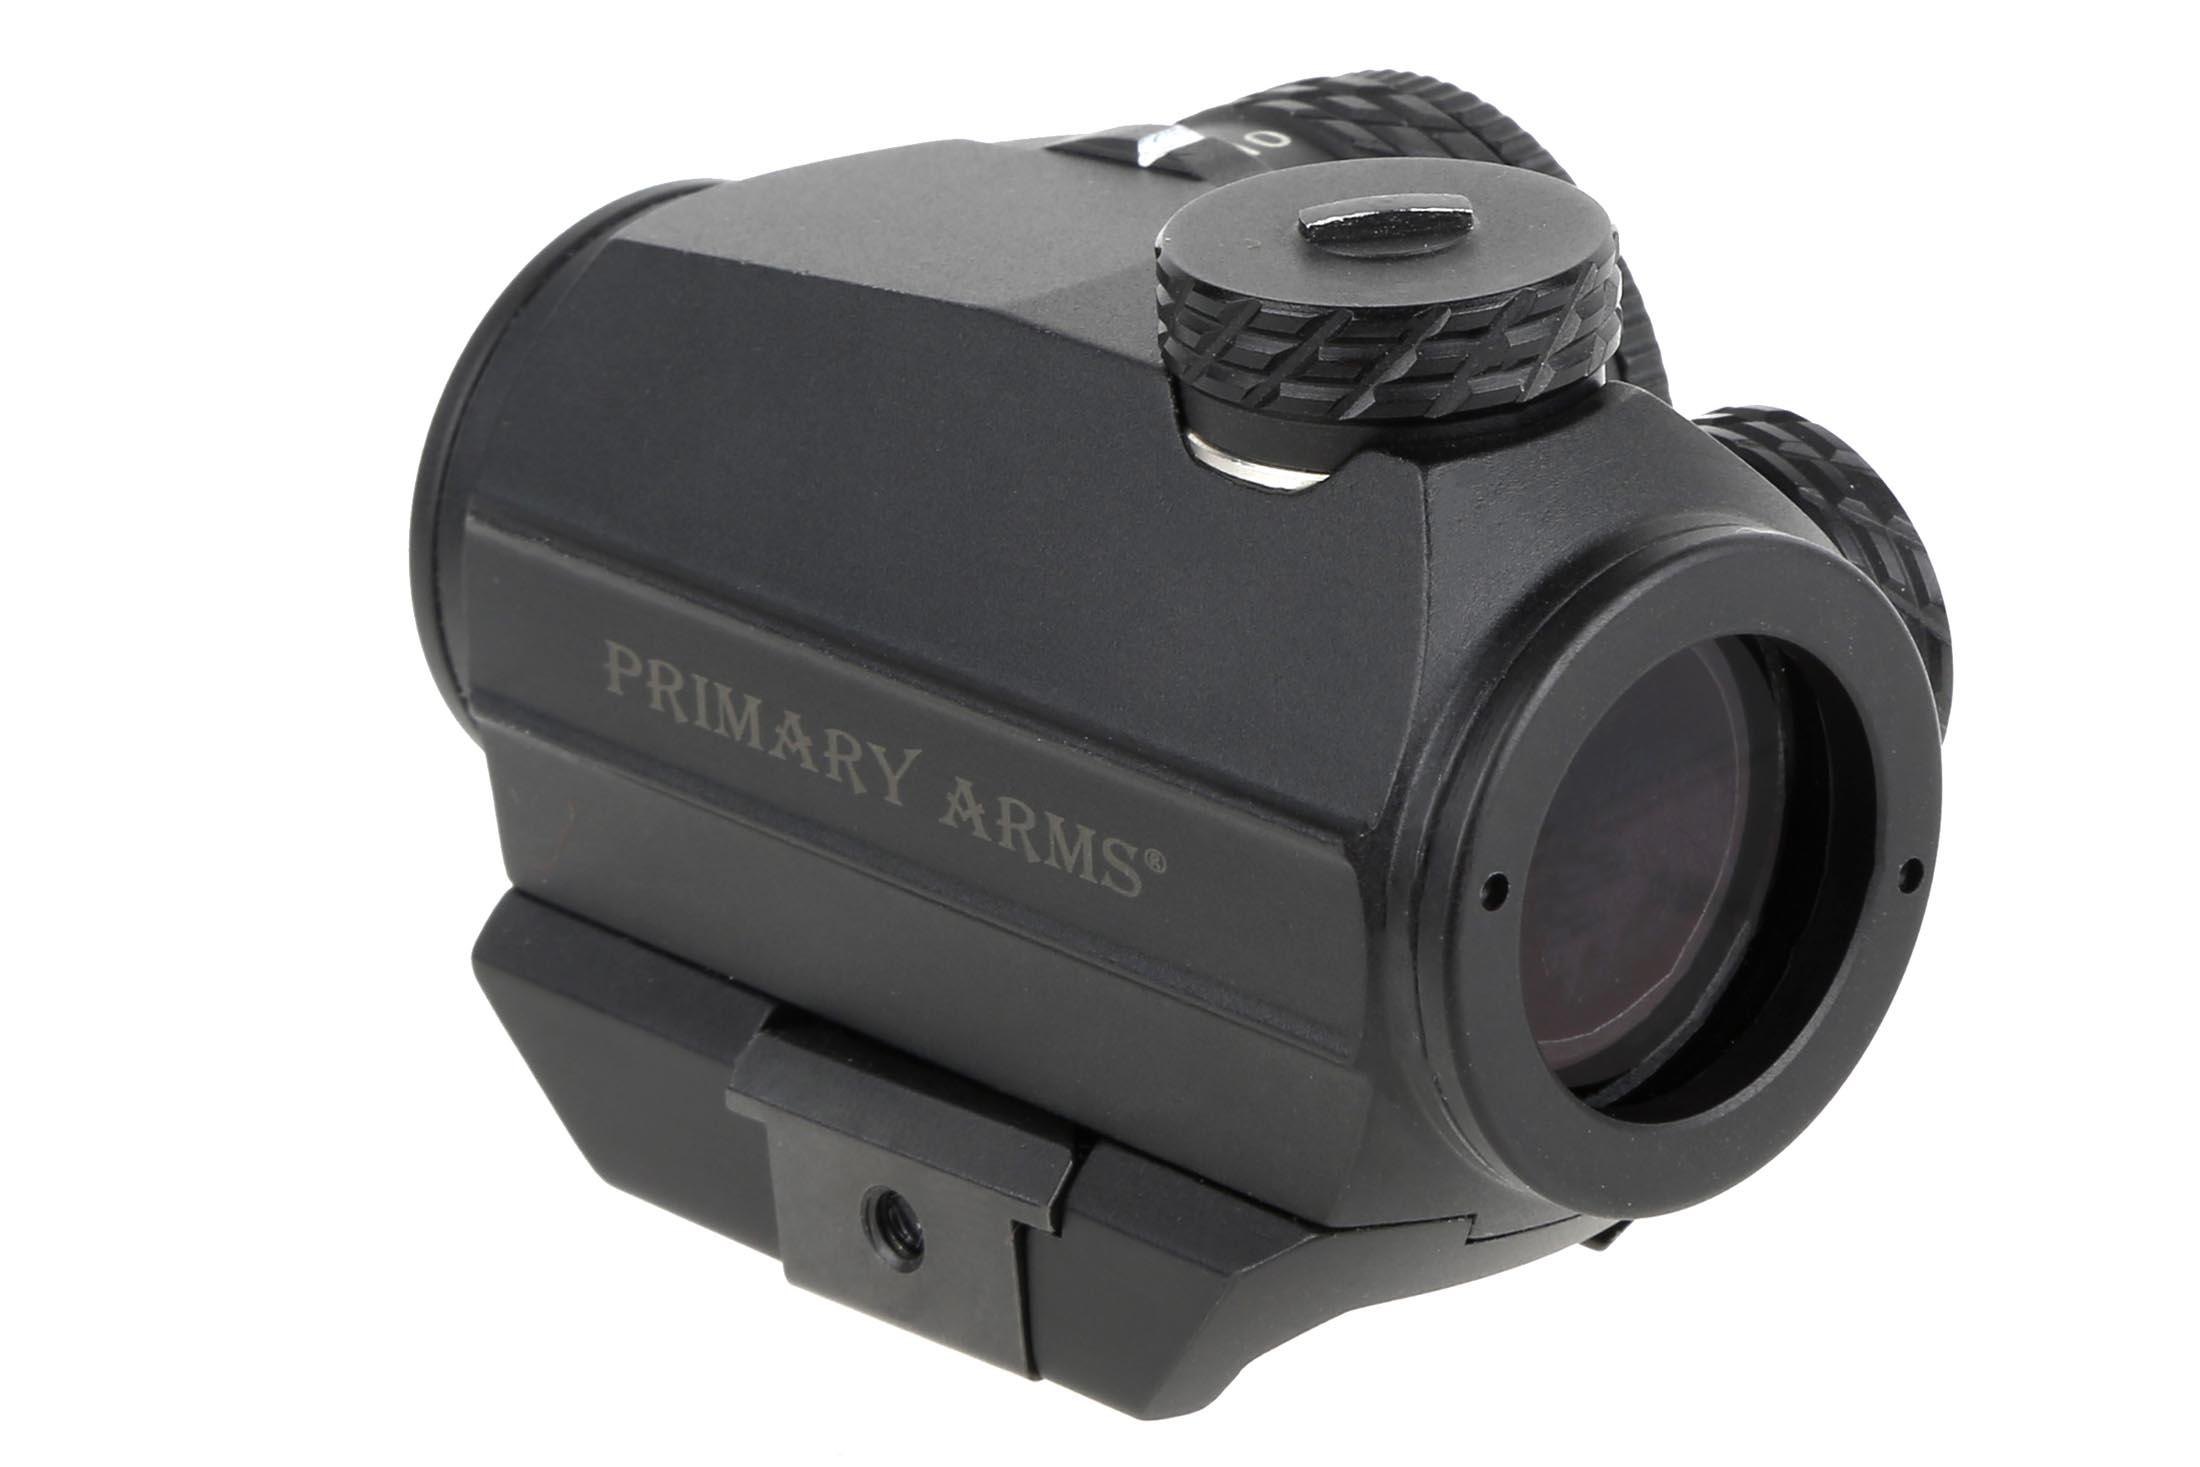 The Advanced Micro Red Dot from Primary Arms sight has 11 illumination settings